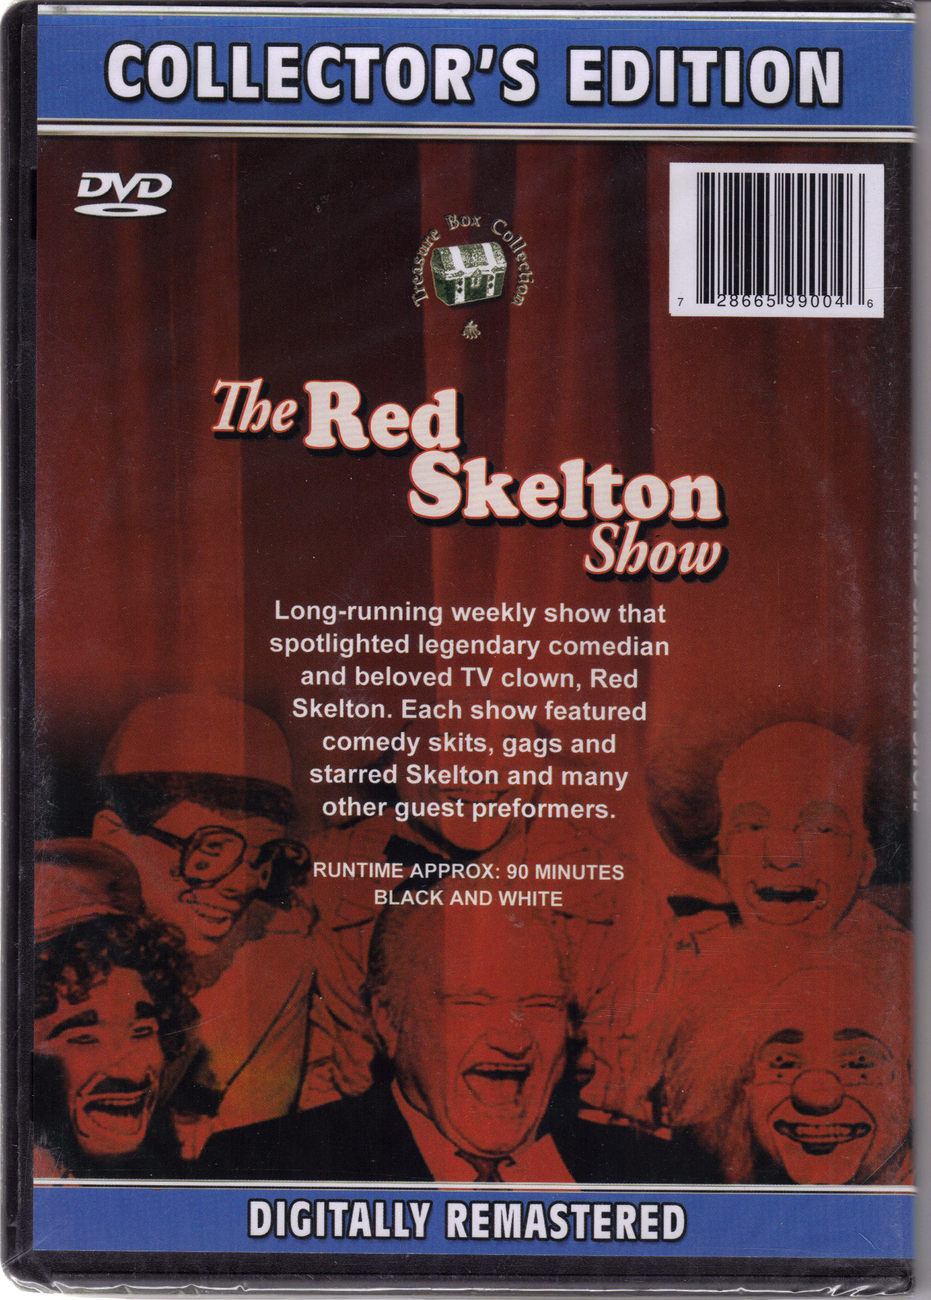 THE RED SKELTON SHOW on DVD Collector's Edition